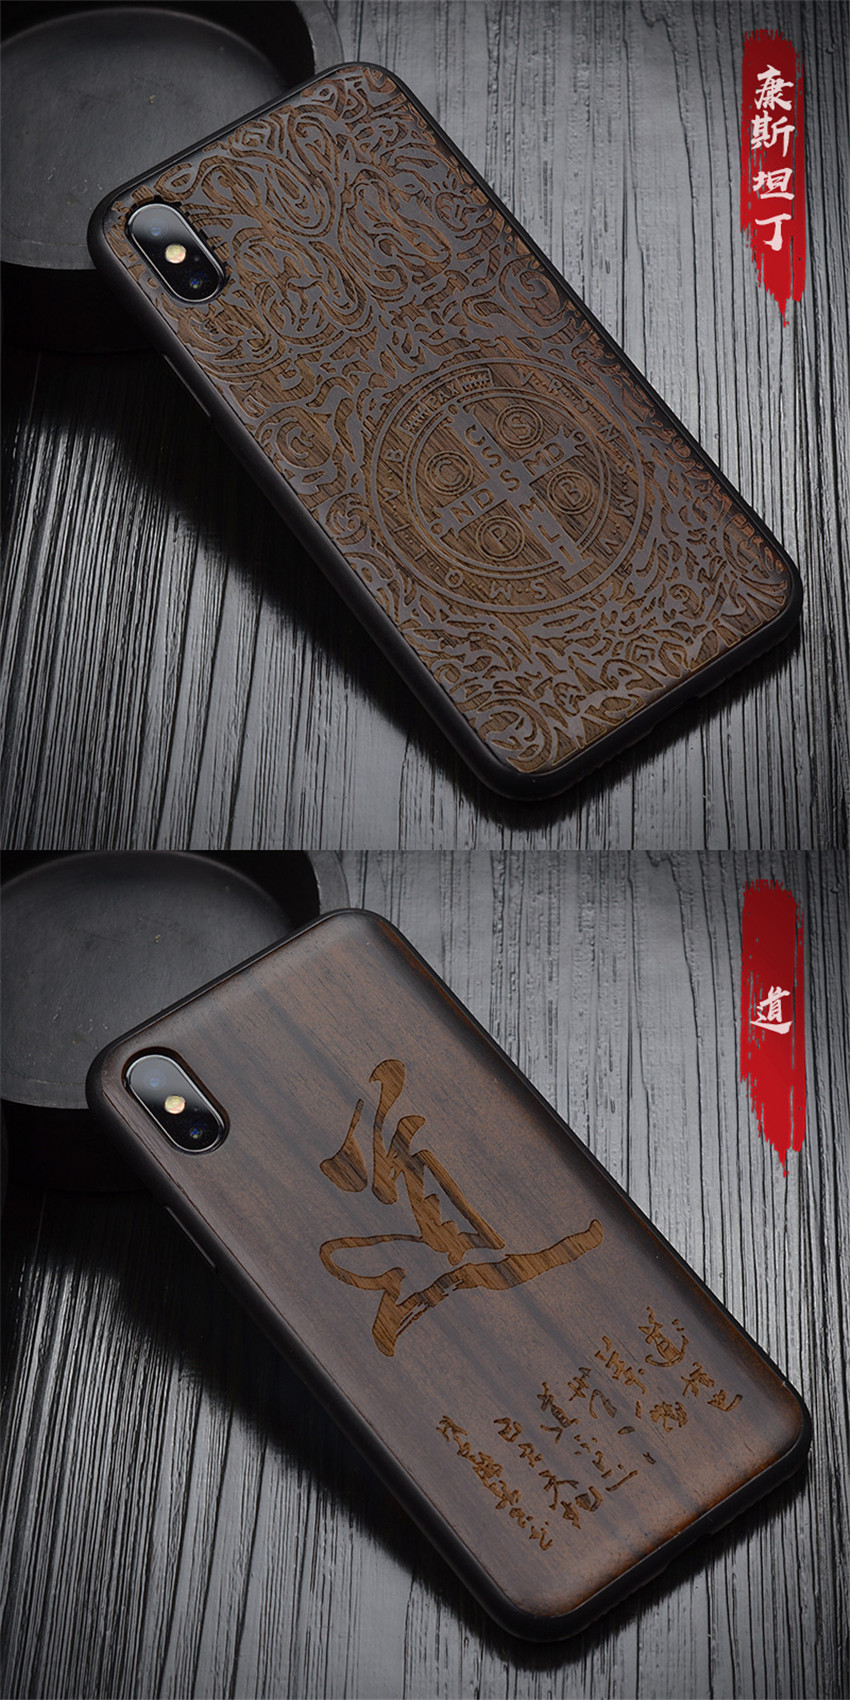 2018 New For iPhone X Case Black Ebony Wood Cover For iPhone X iPhone 10 Carved TPU Bumper Wooden Protective Case 5 (10)